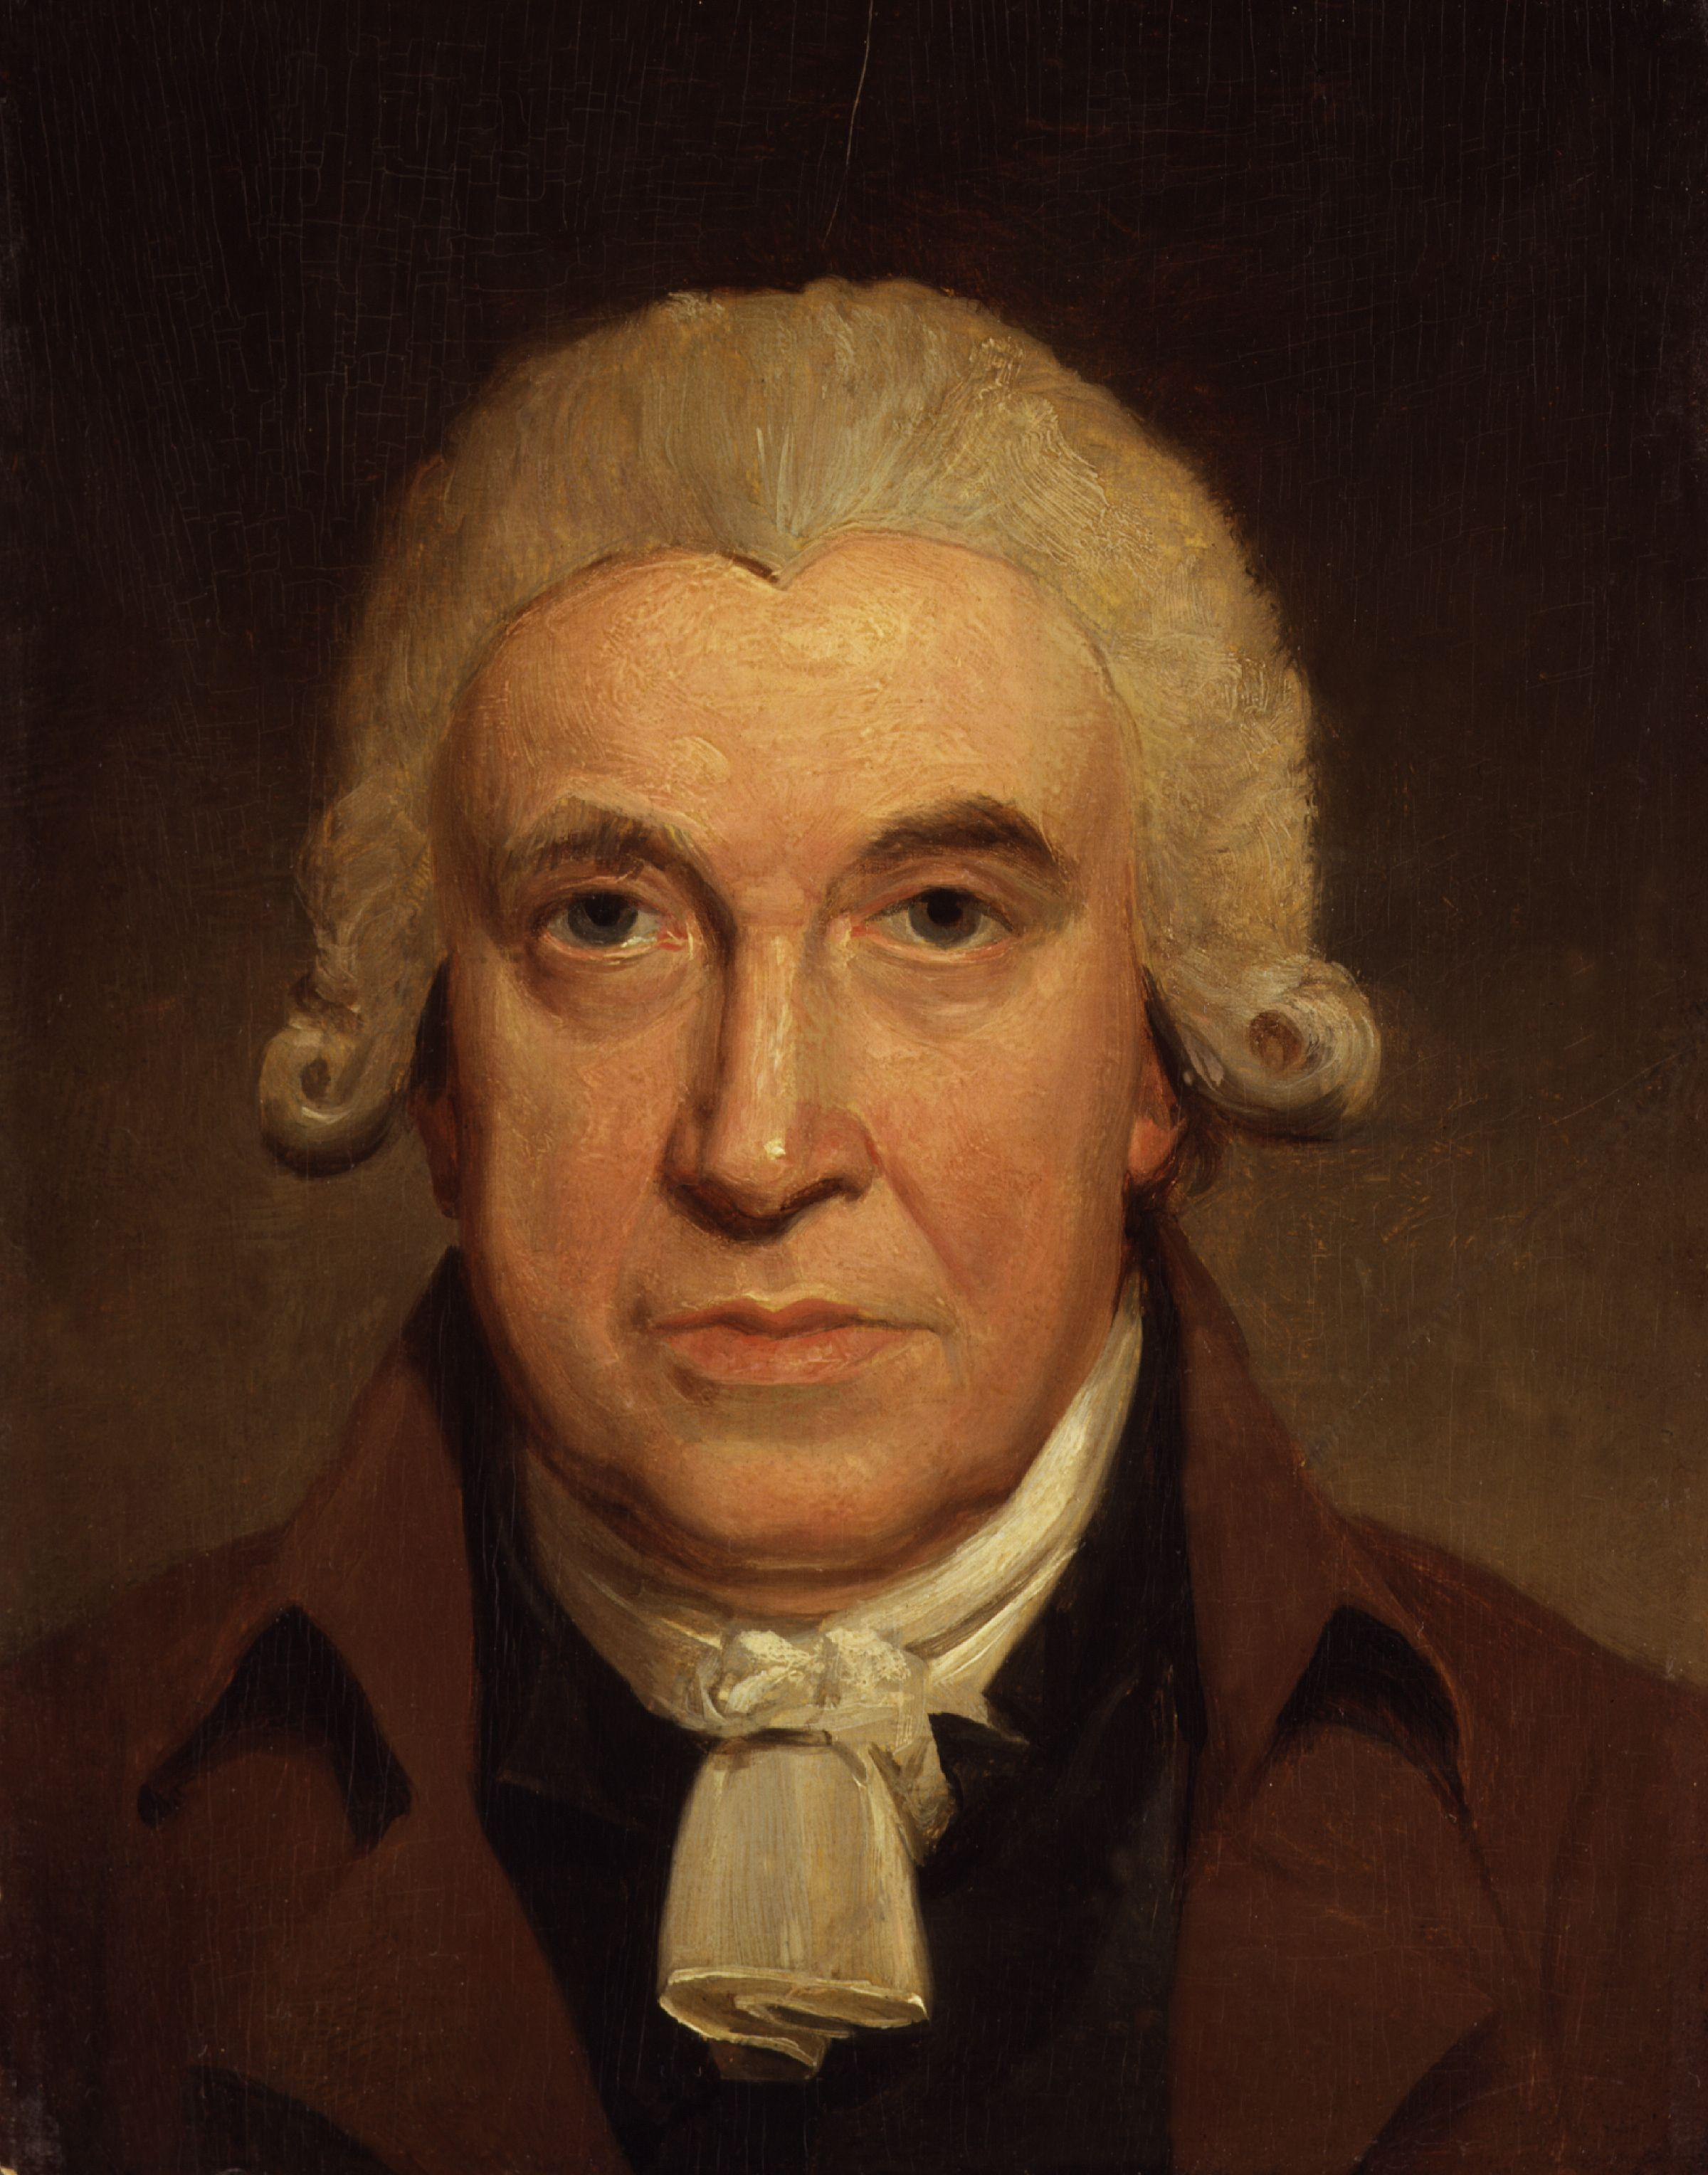 File:James Watt by Henry Howard.jpg - Wikimedia Commons